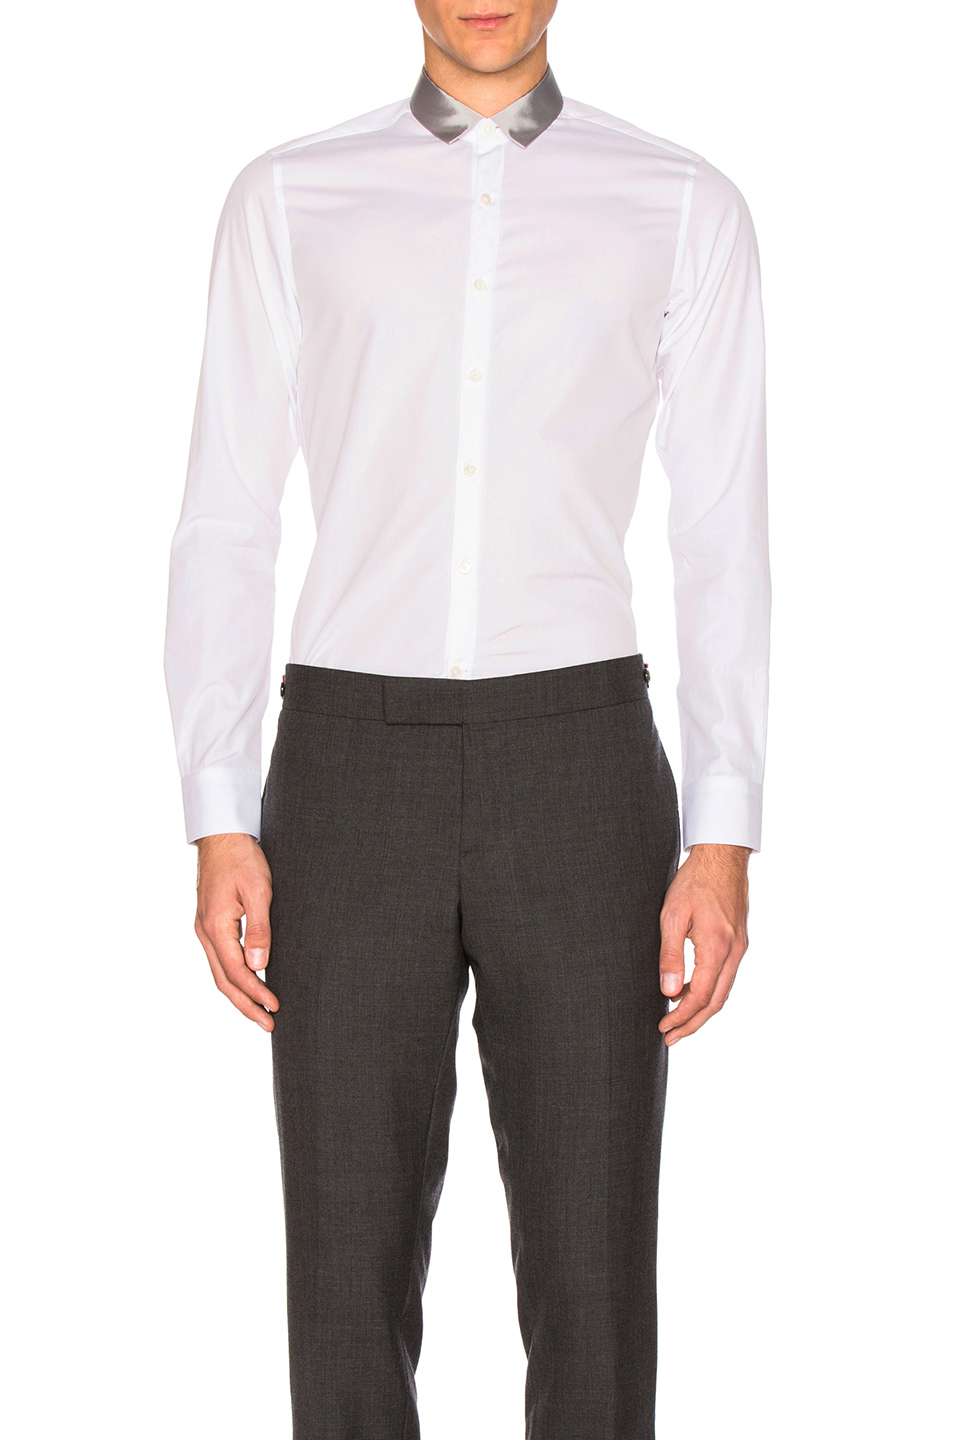 Lanvin Signature Ribbon Collar Shirt in White